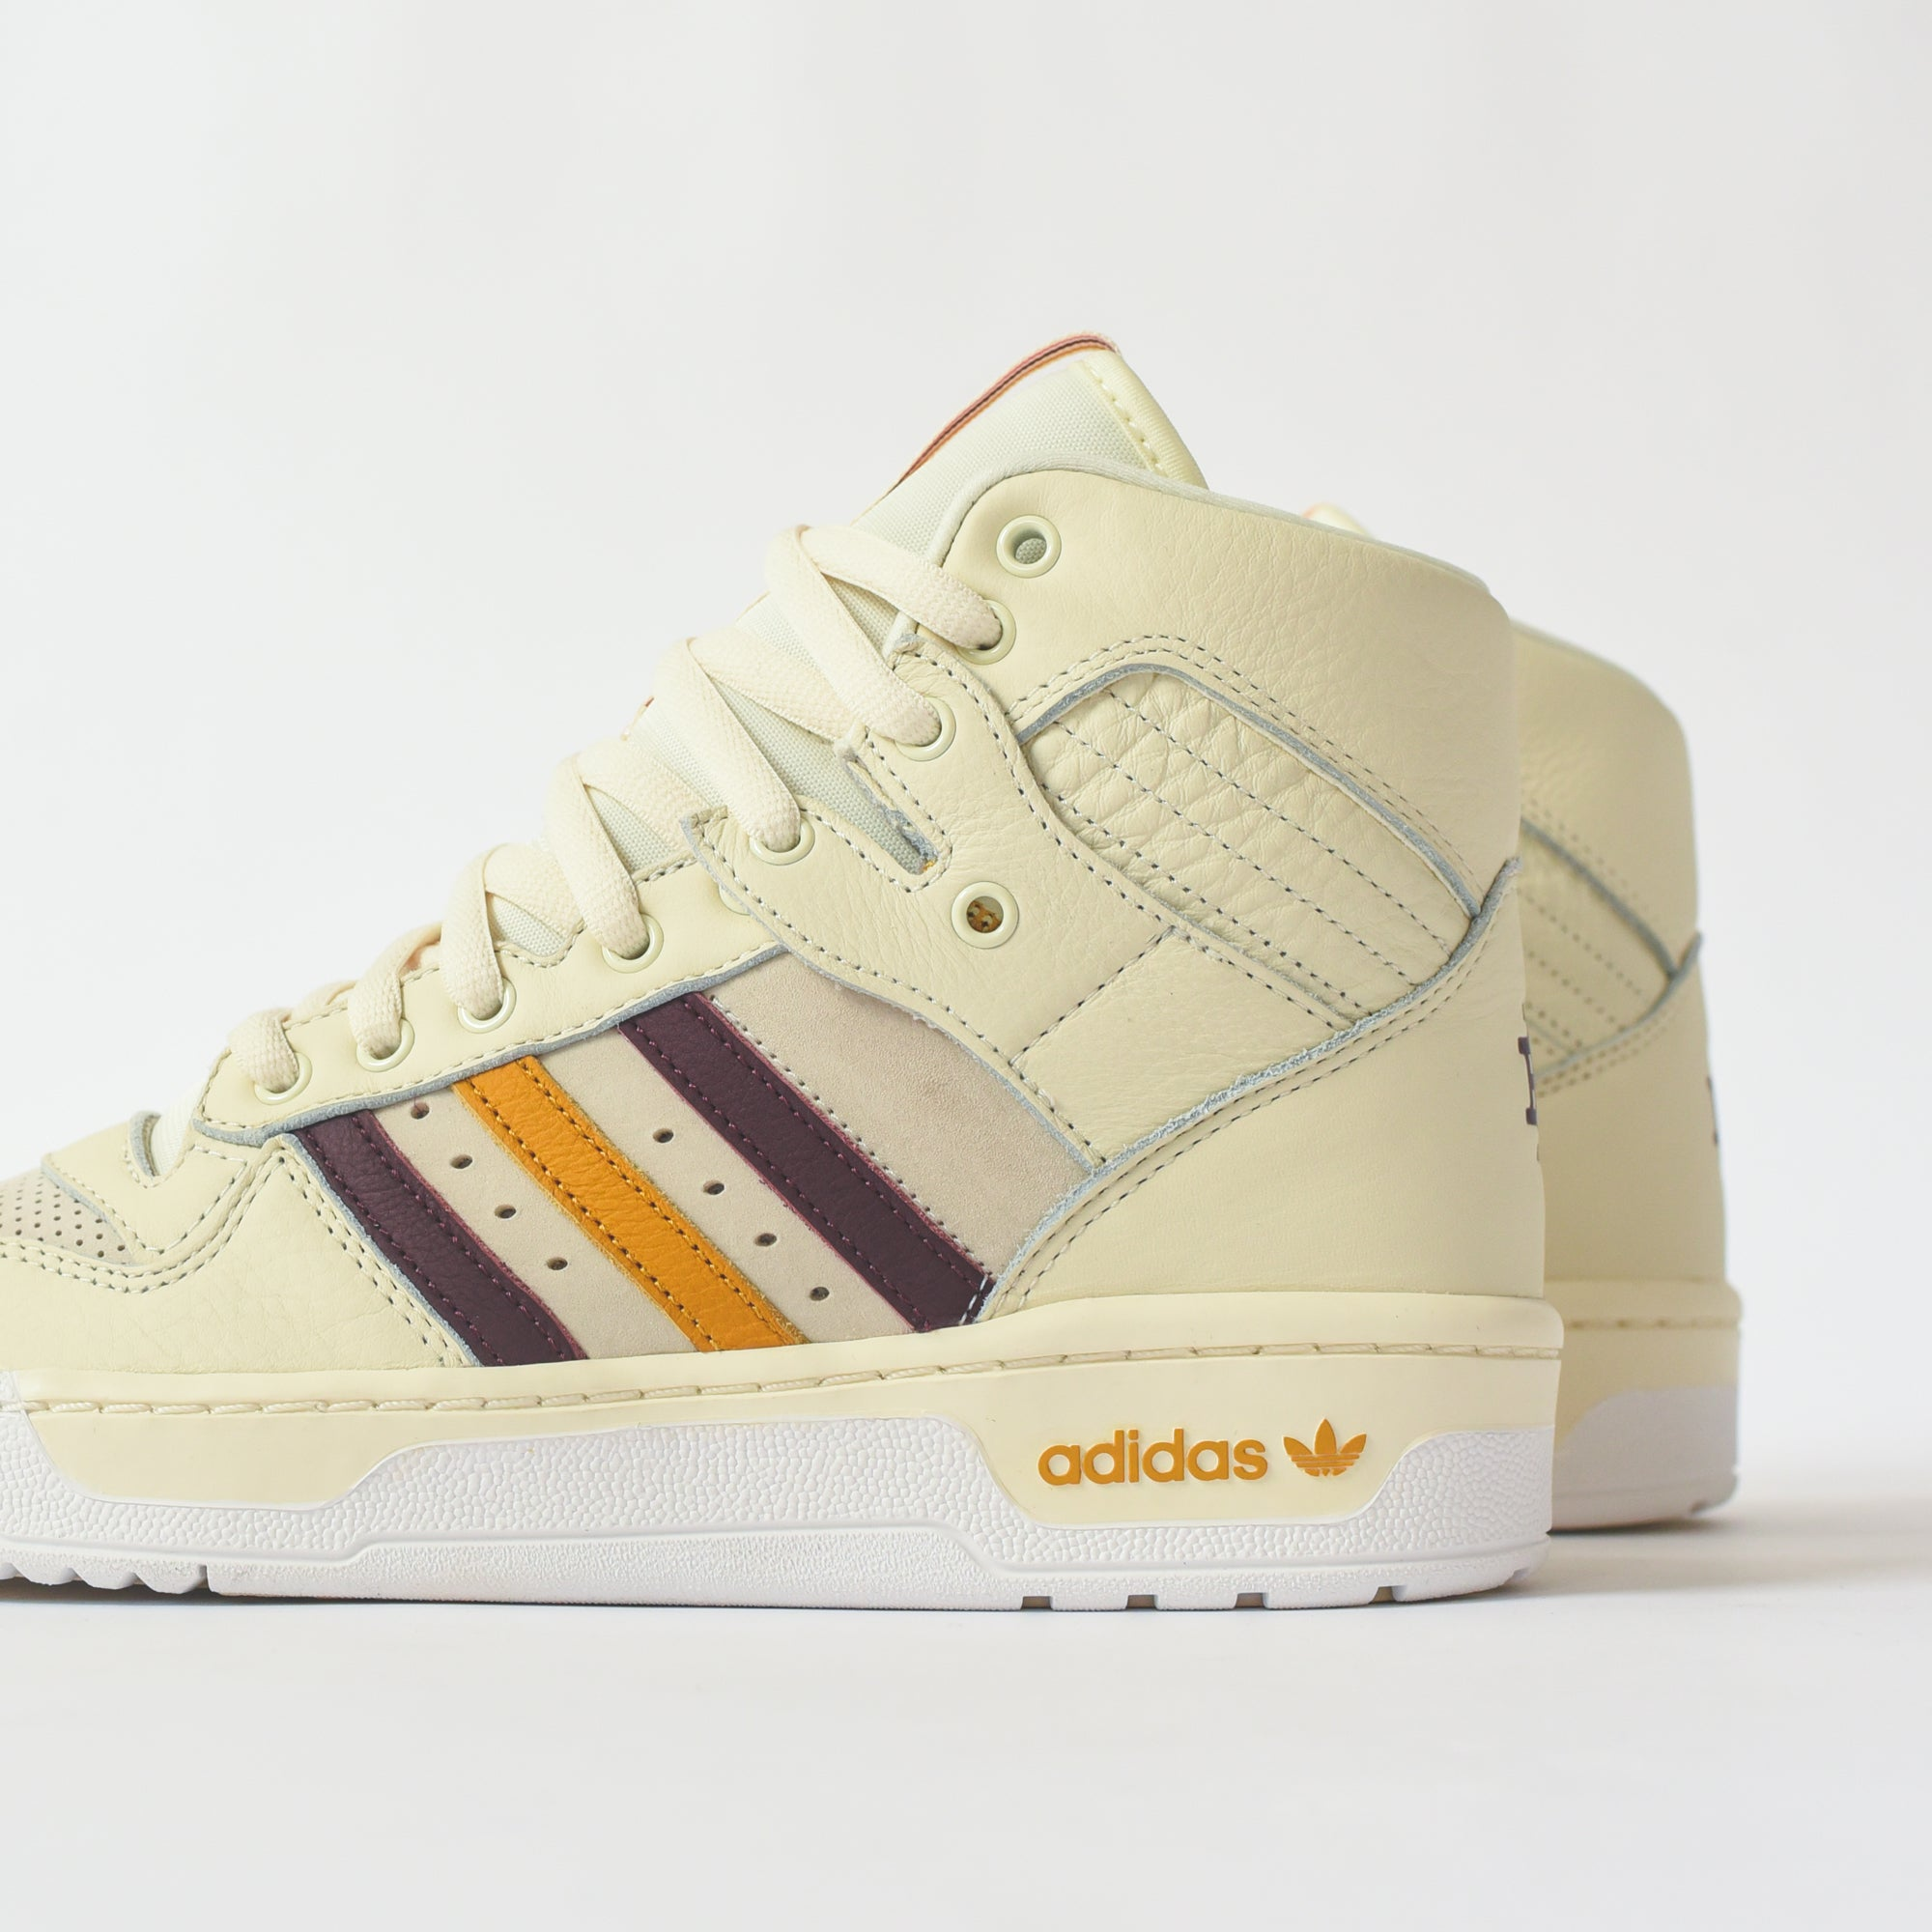 Adidas x Eric Emanuel Rivalry Hi - Cream / White